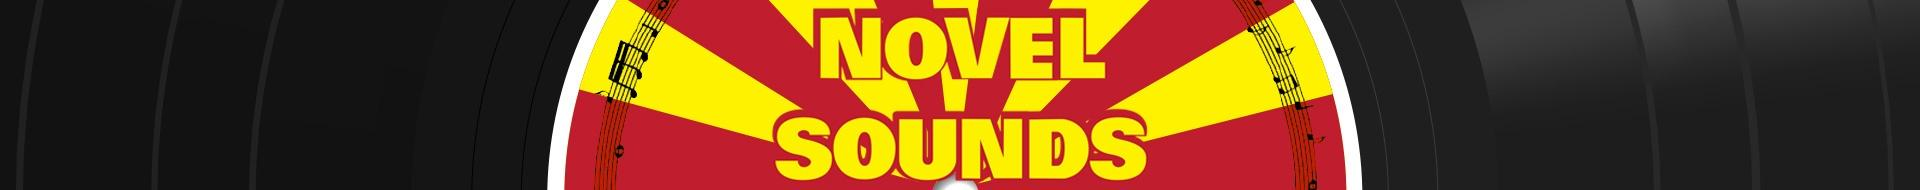 Novel Sounds: American Fiction in the Age of Rock & Roll